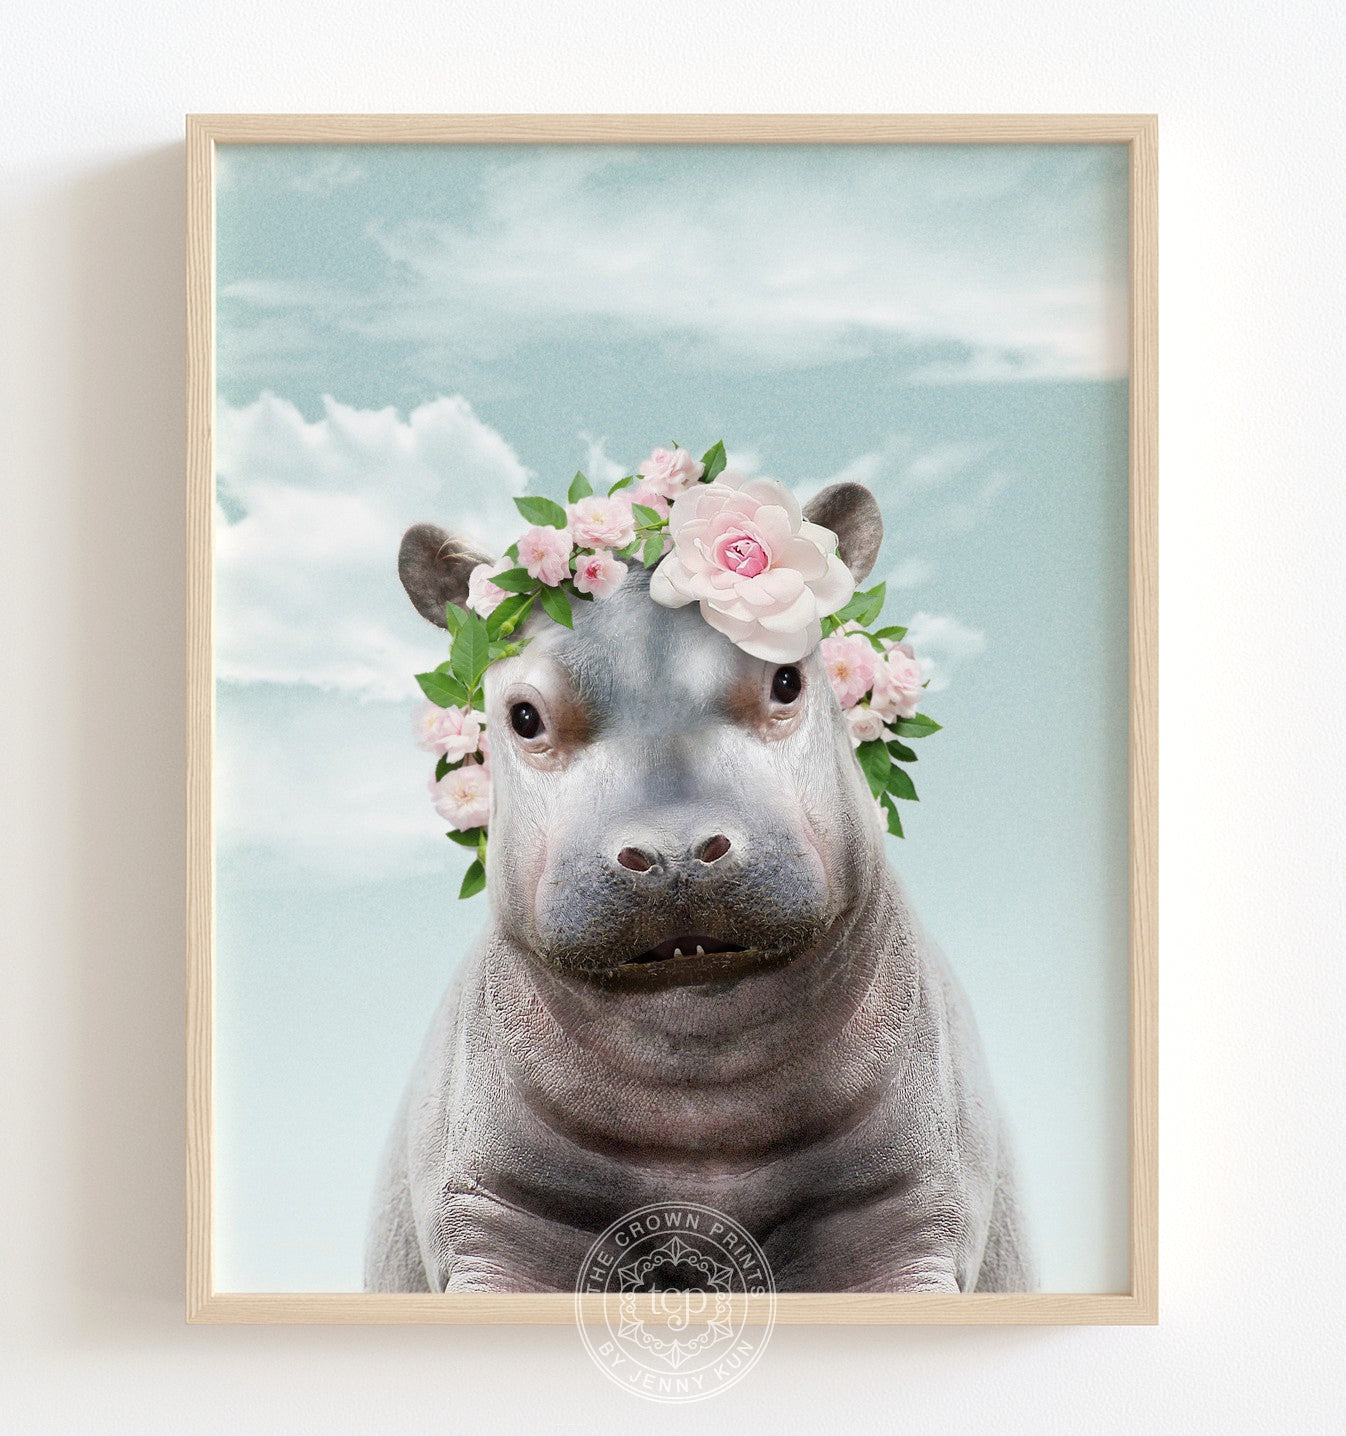 Baby Hippo with Flower Crown and Blue Sky Poster